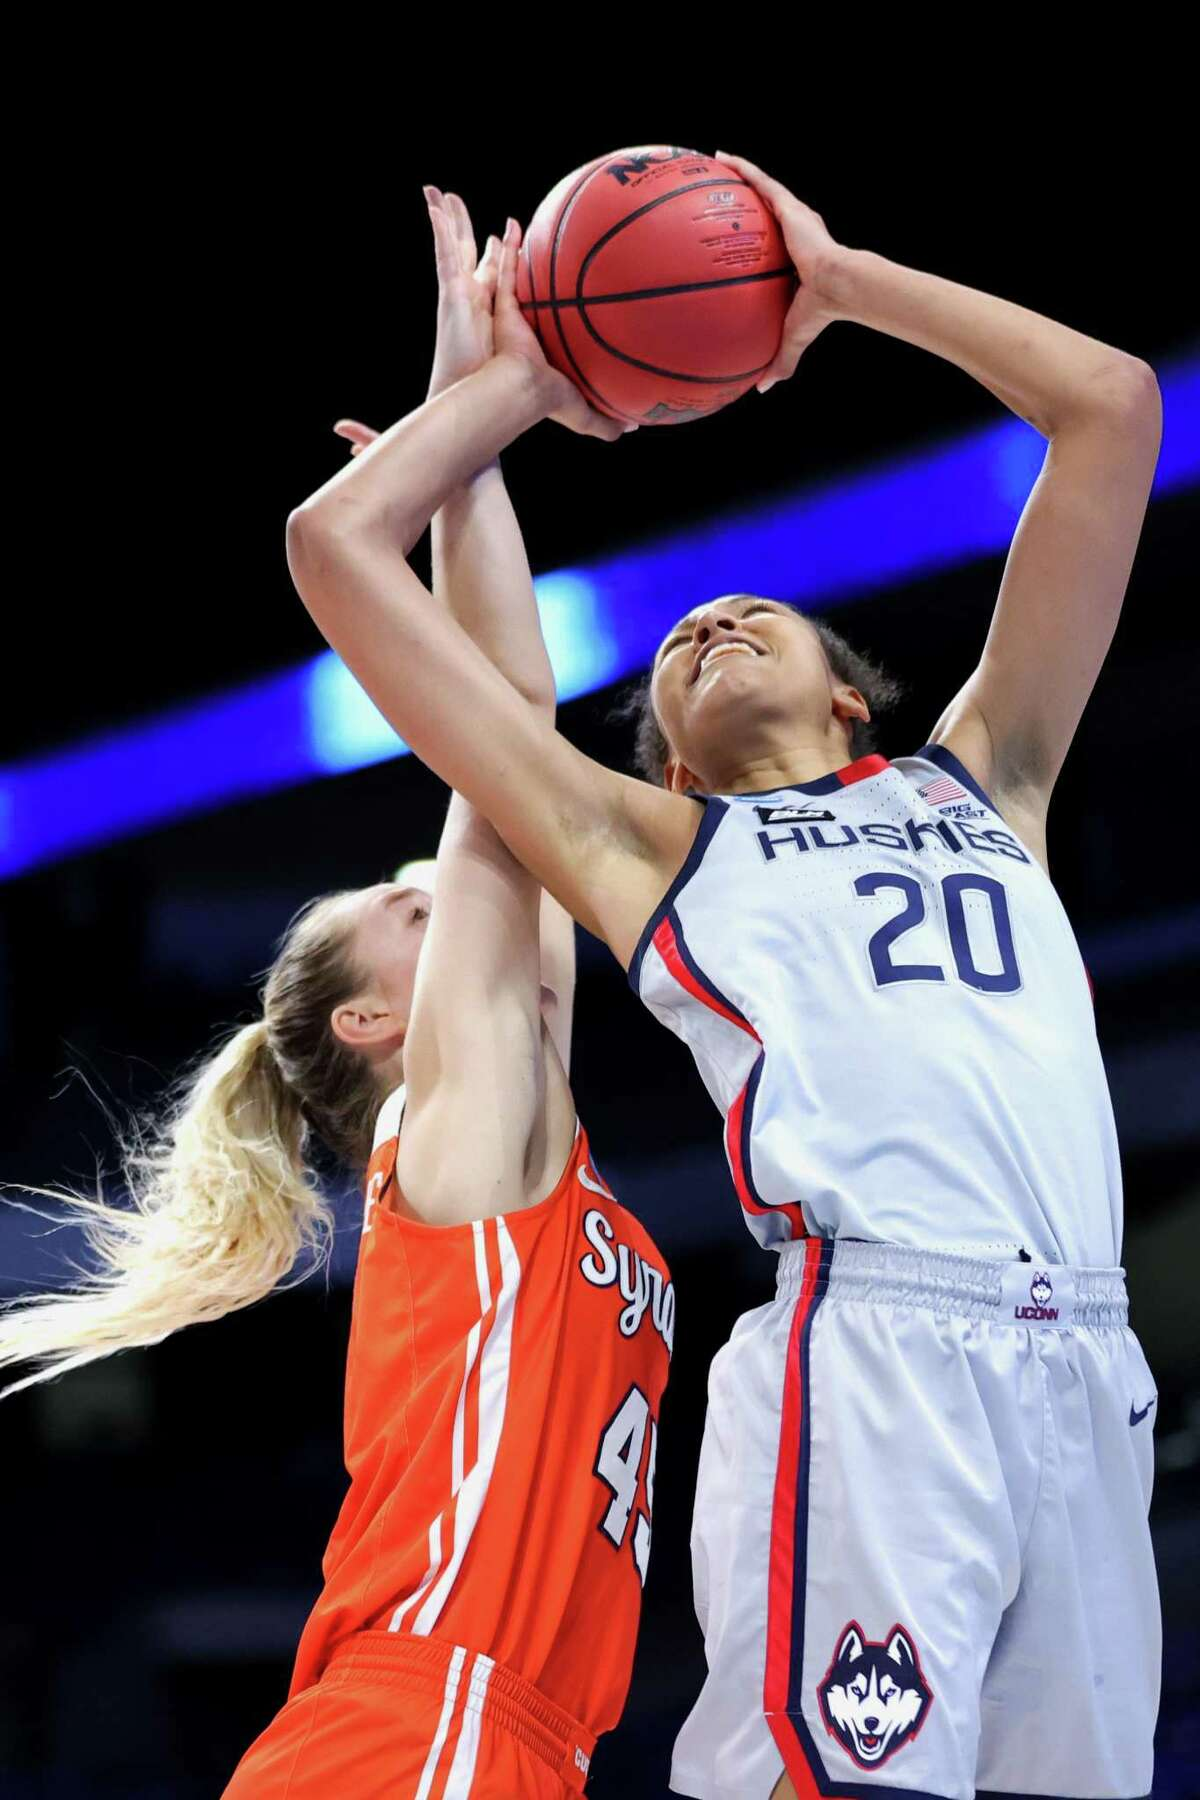 SAN ANTONIO, TEXAS - MARCH 23: Olivia Nelson-Ododa #20 of the UConn Huskies goes up for a basket against Digna Strautmane #45 of the Syracuse Orange during the second half in the second round game of the 2021 NCAA Women's Basketball Tournament at the Alamodome on March 23, 2021 in San Antonio, Texas. (Photo by Carmen Mandato/Getty Images)